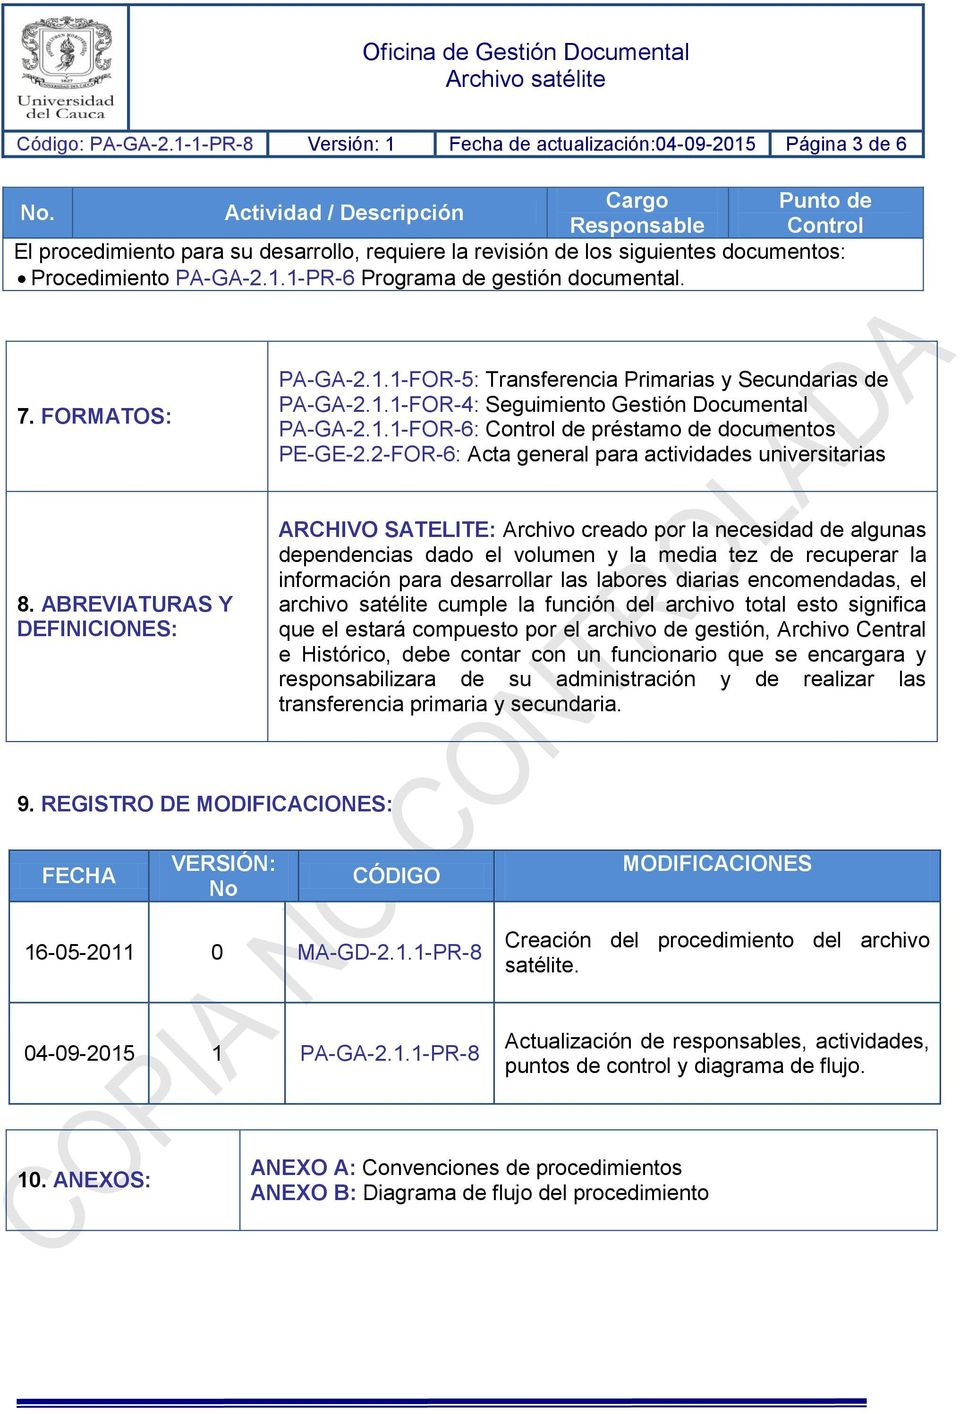 FORMATOS: PA-GA-2.1.1-FOR-5: Transferencia Primarias y Secundarias de PA-GA-2.1.1-FOR-4: Seguimiento Gestión Documental PA-GA-2.1.1-FOR-6: Control de préstamo de documentos PE-GE-2.